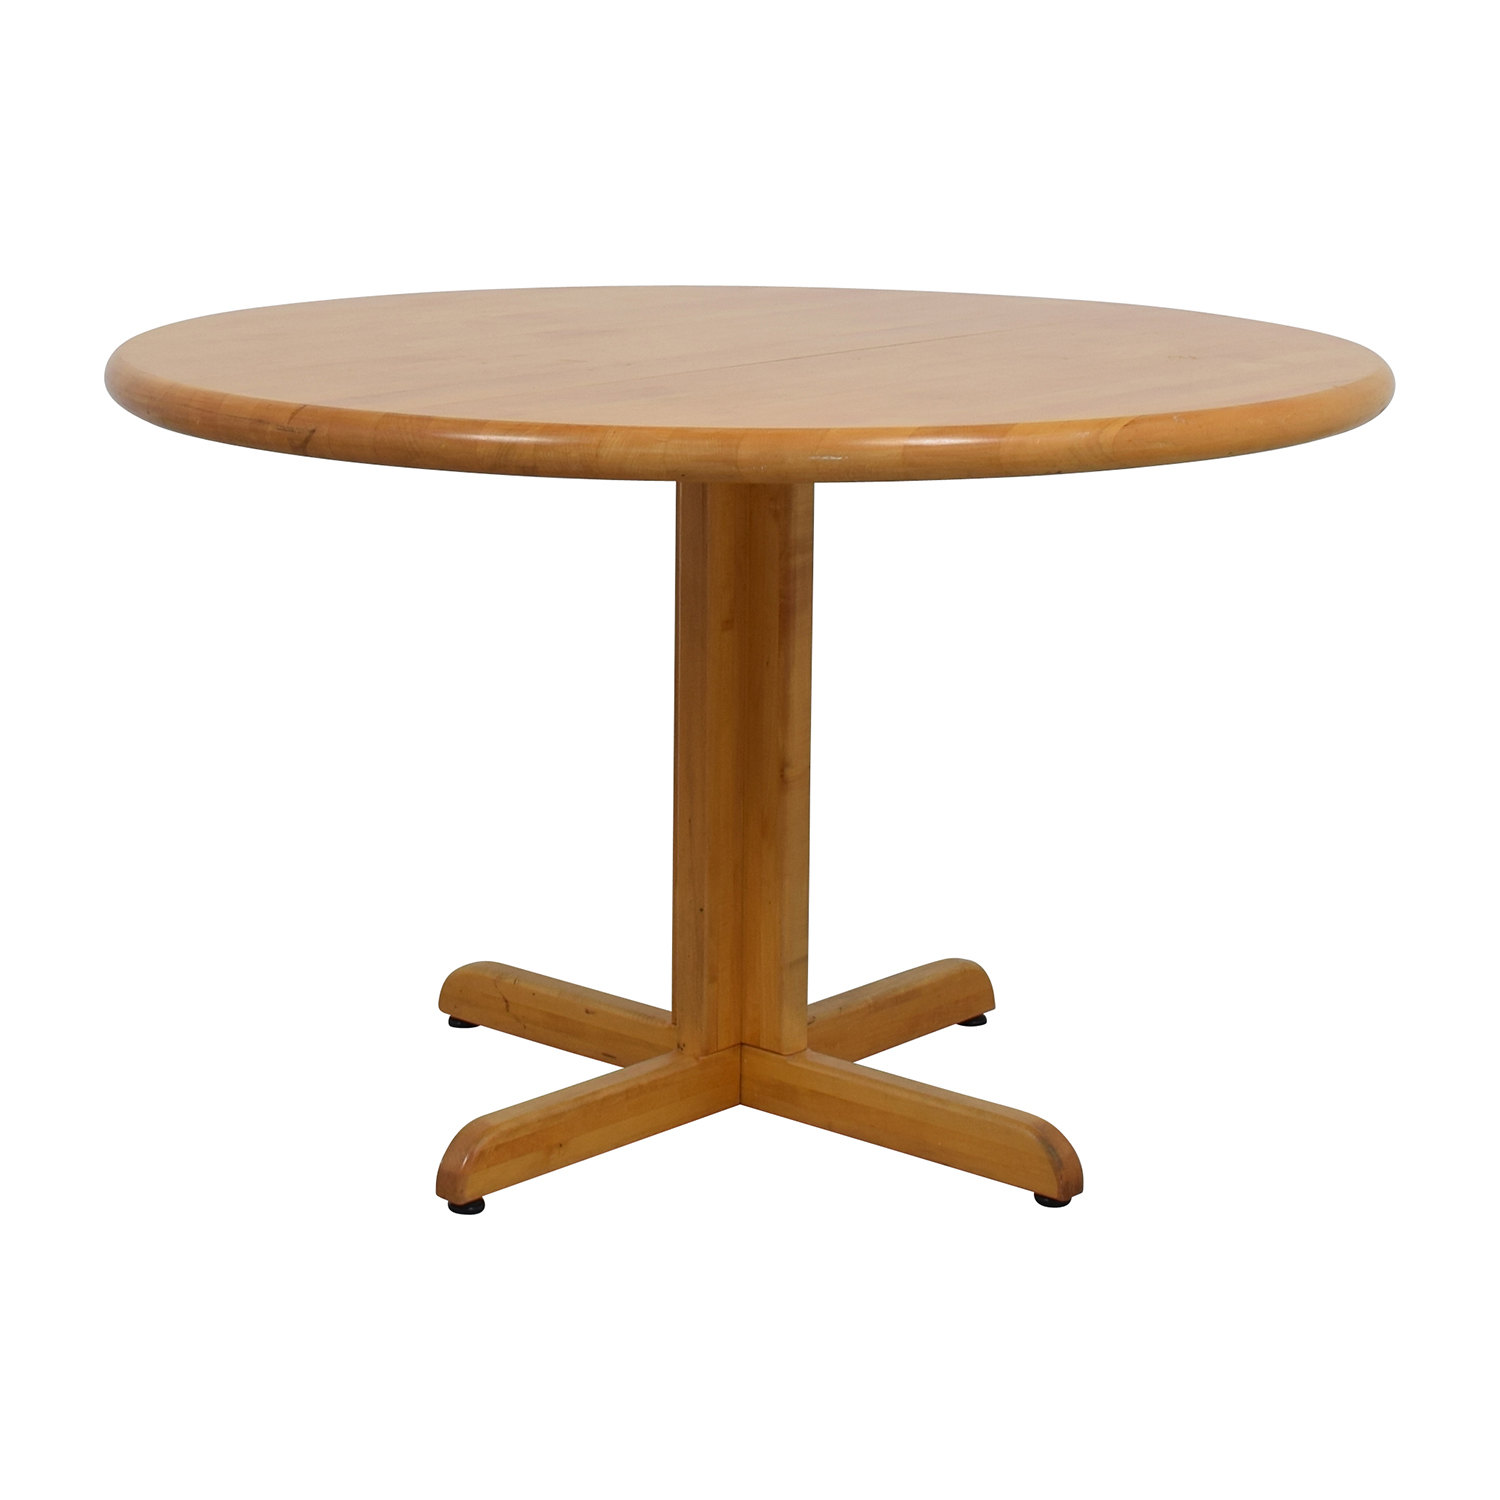 90 off solid wood round table tables for Solid wood round tables dining